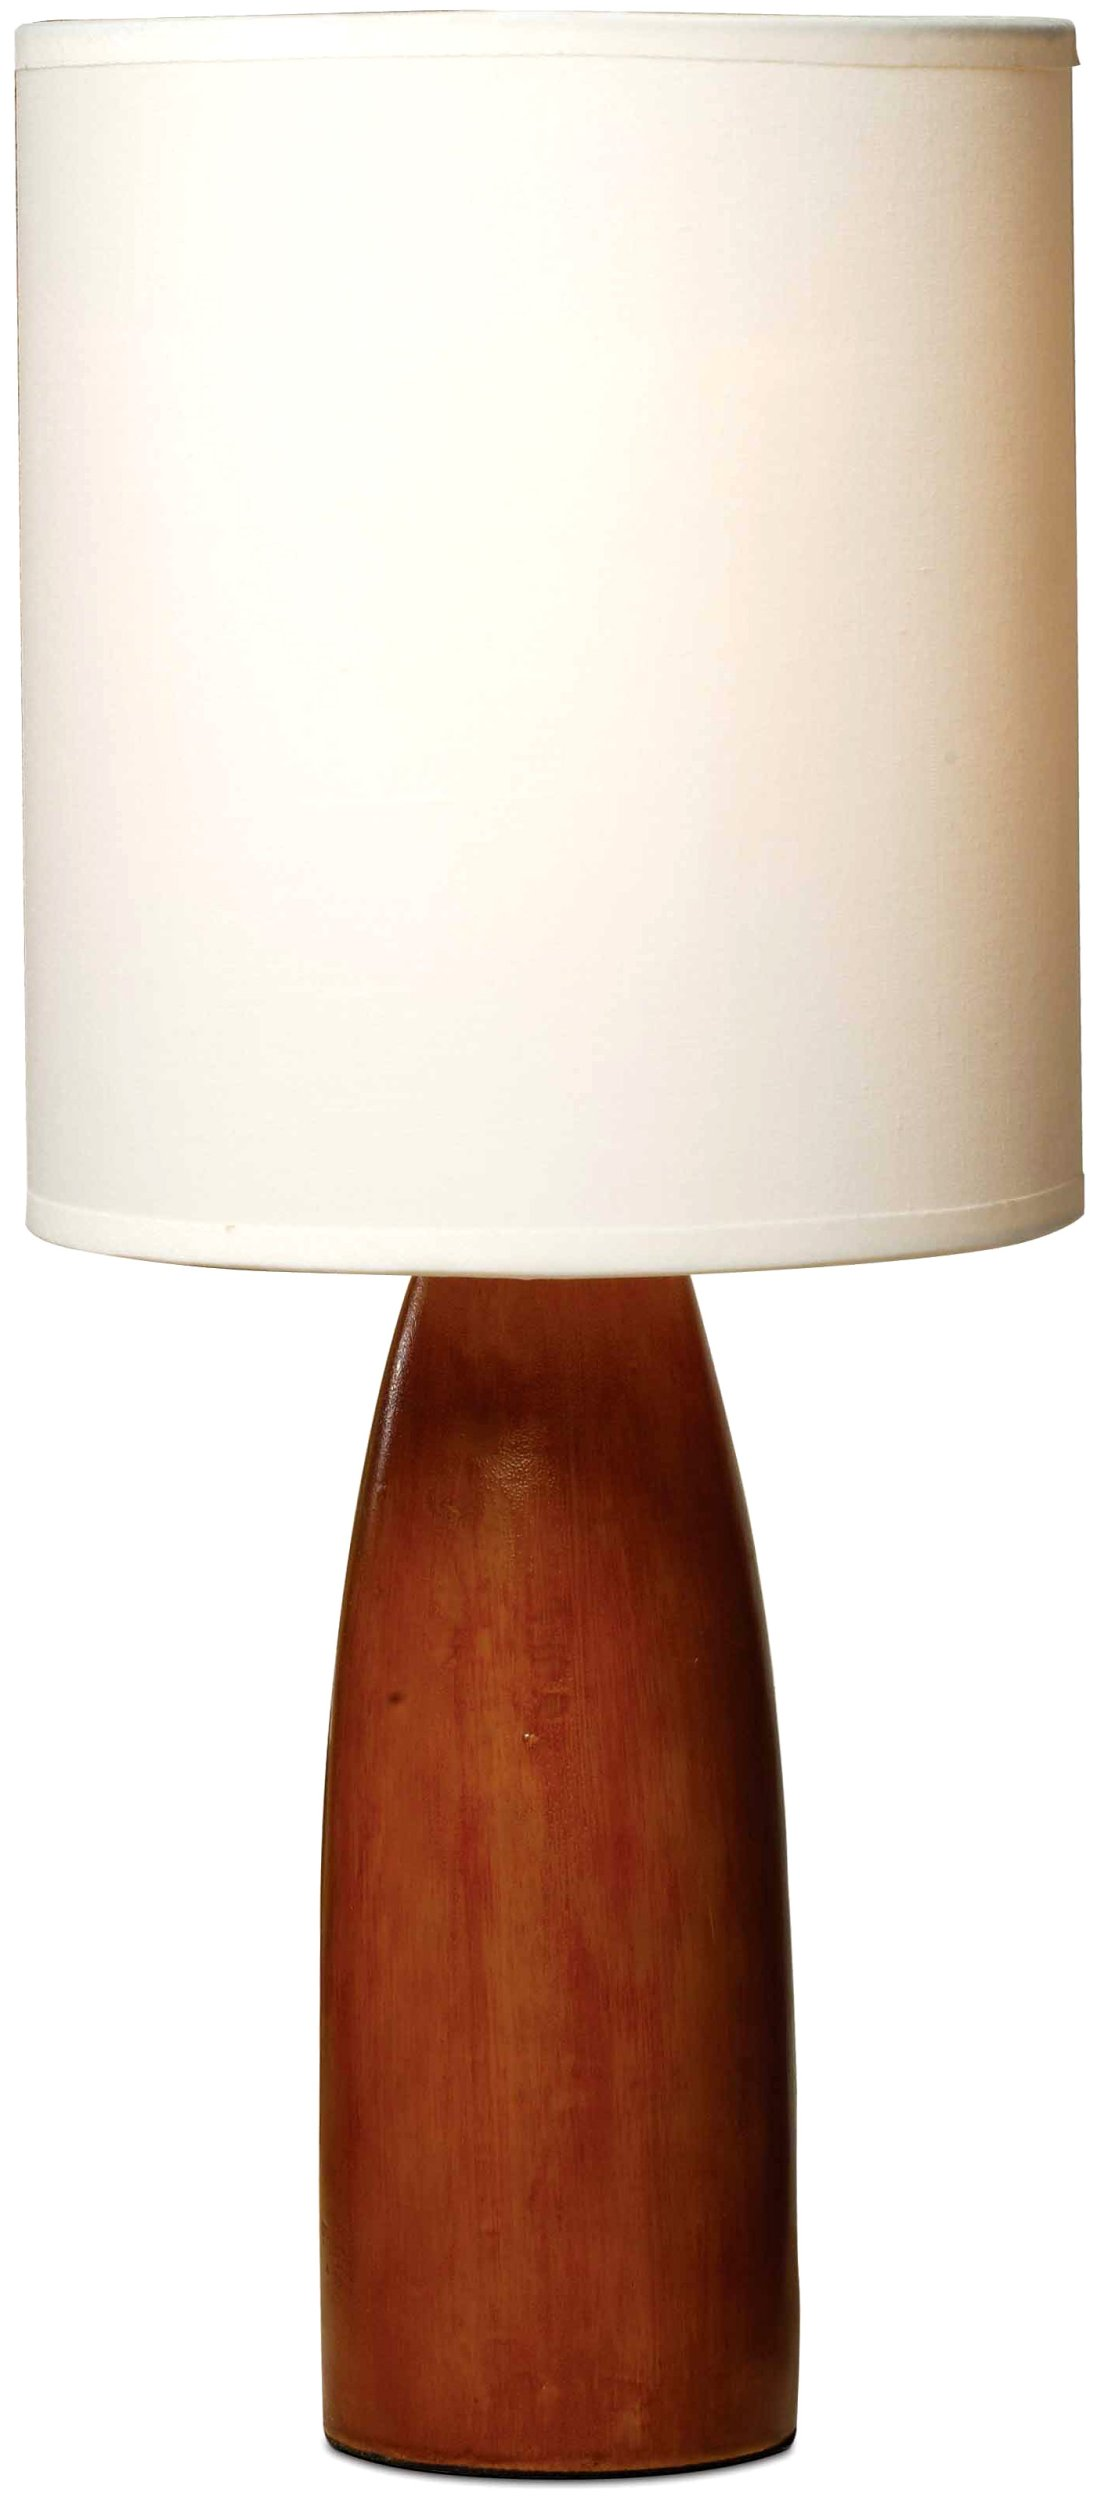 Cheap 100 Watt Table Lamp Find 100 Watt Table Lamp Deals On Line At